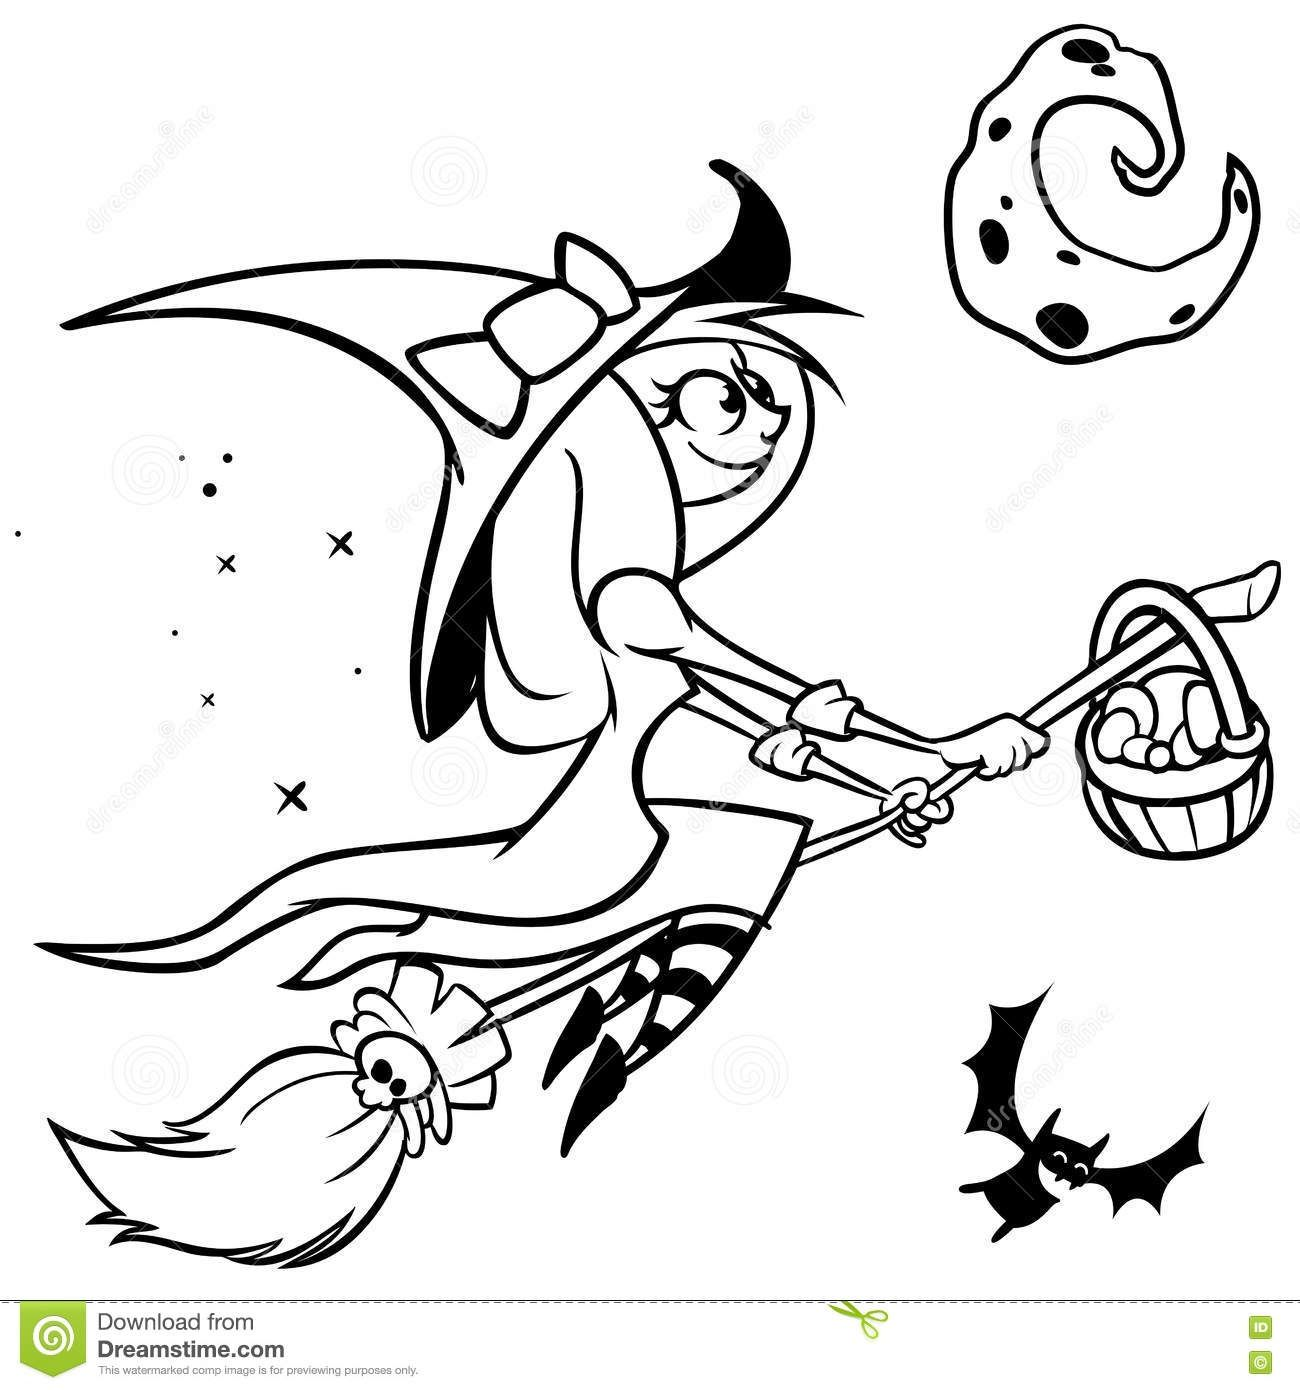 Witch Clipart Black And White Ideas Witch Clipart Clipart Black And White Black And White Cartoon